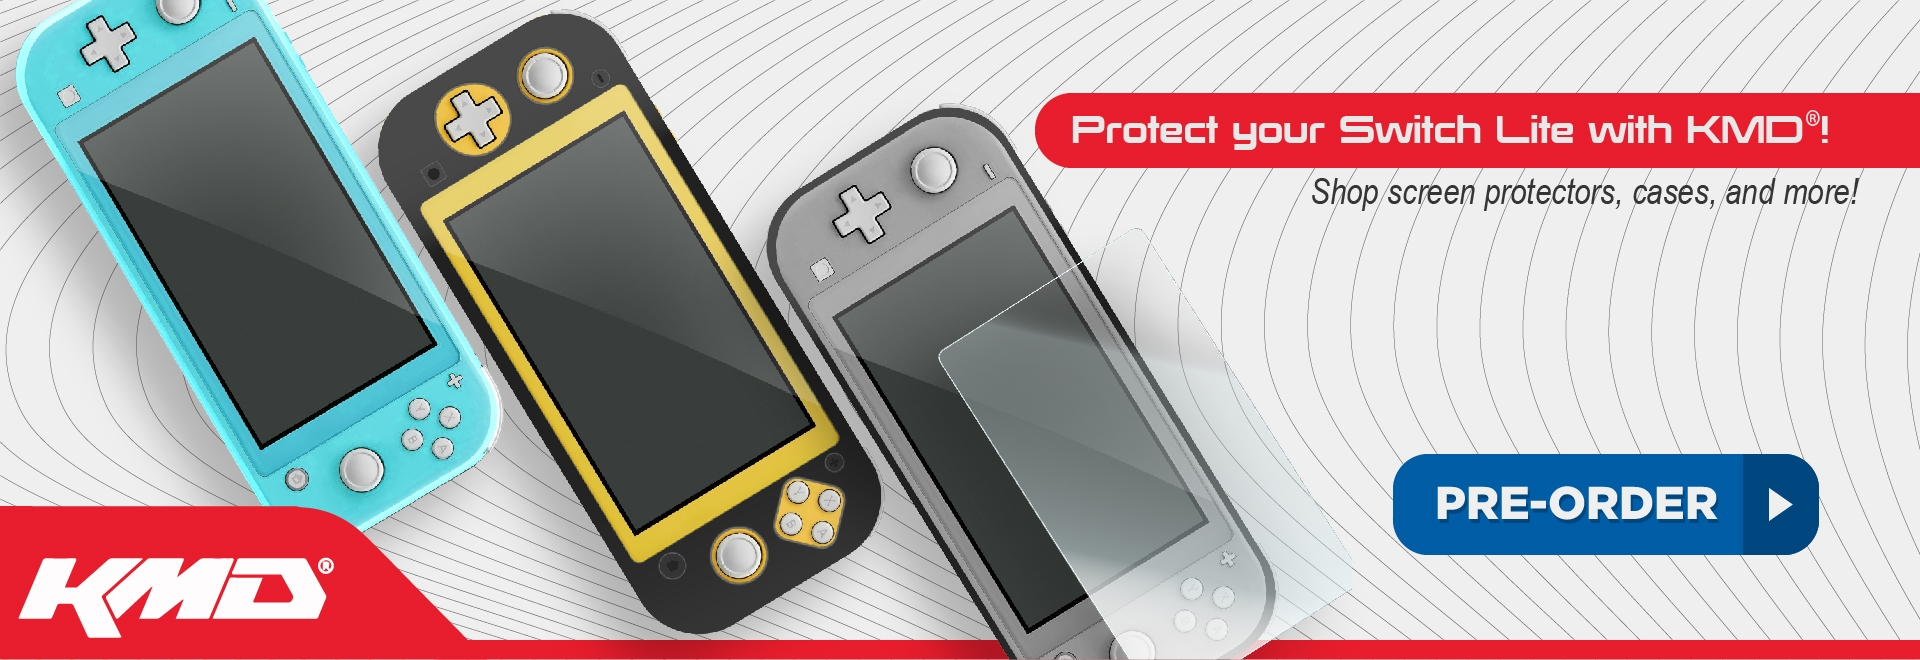 Innex, KMD, Switch, Switch Lite, New, Pre-order, protector, grip, accessories